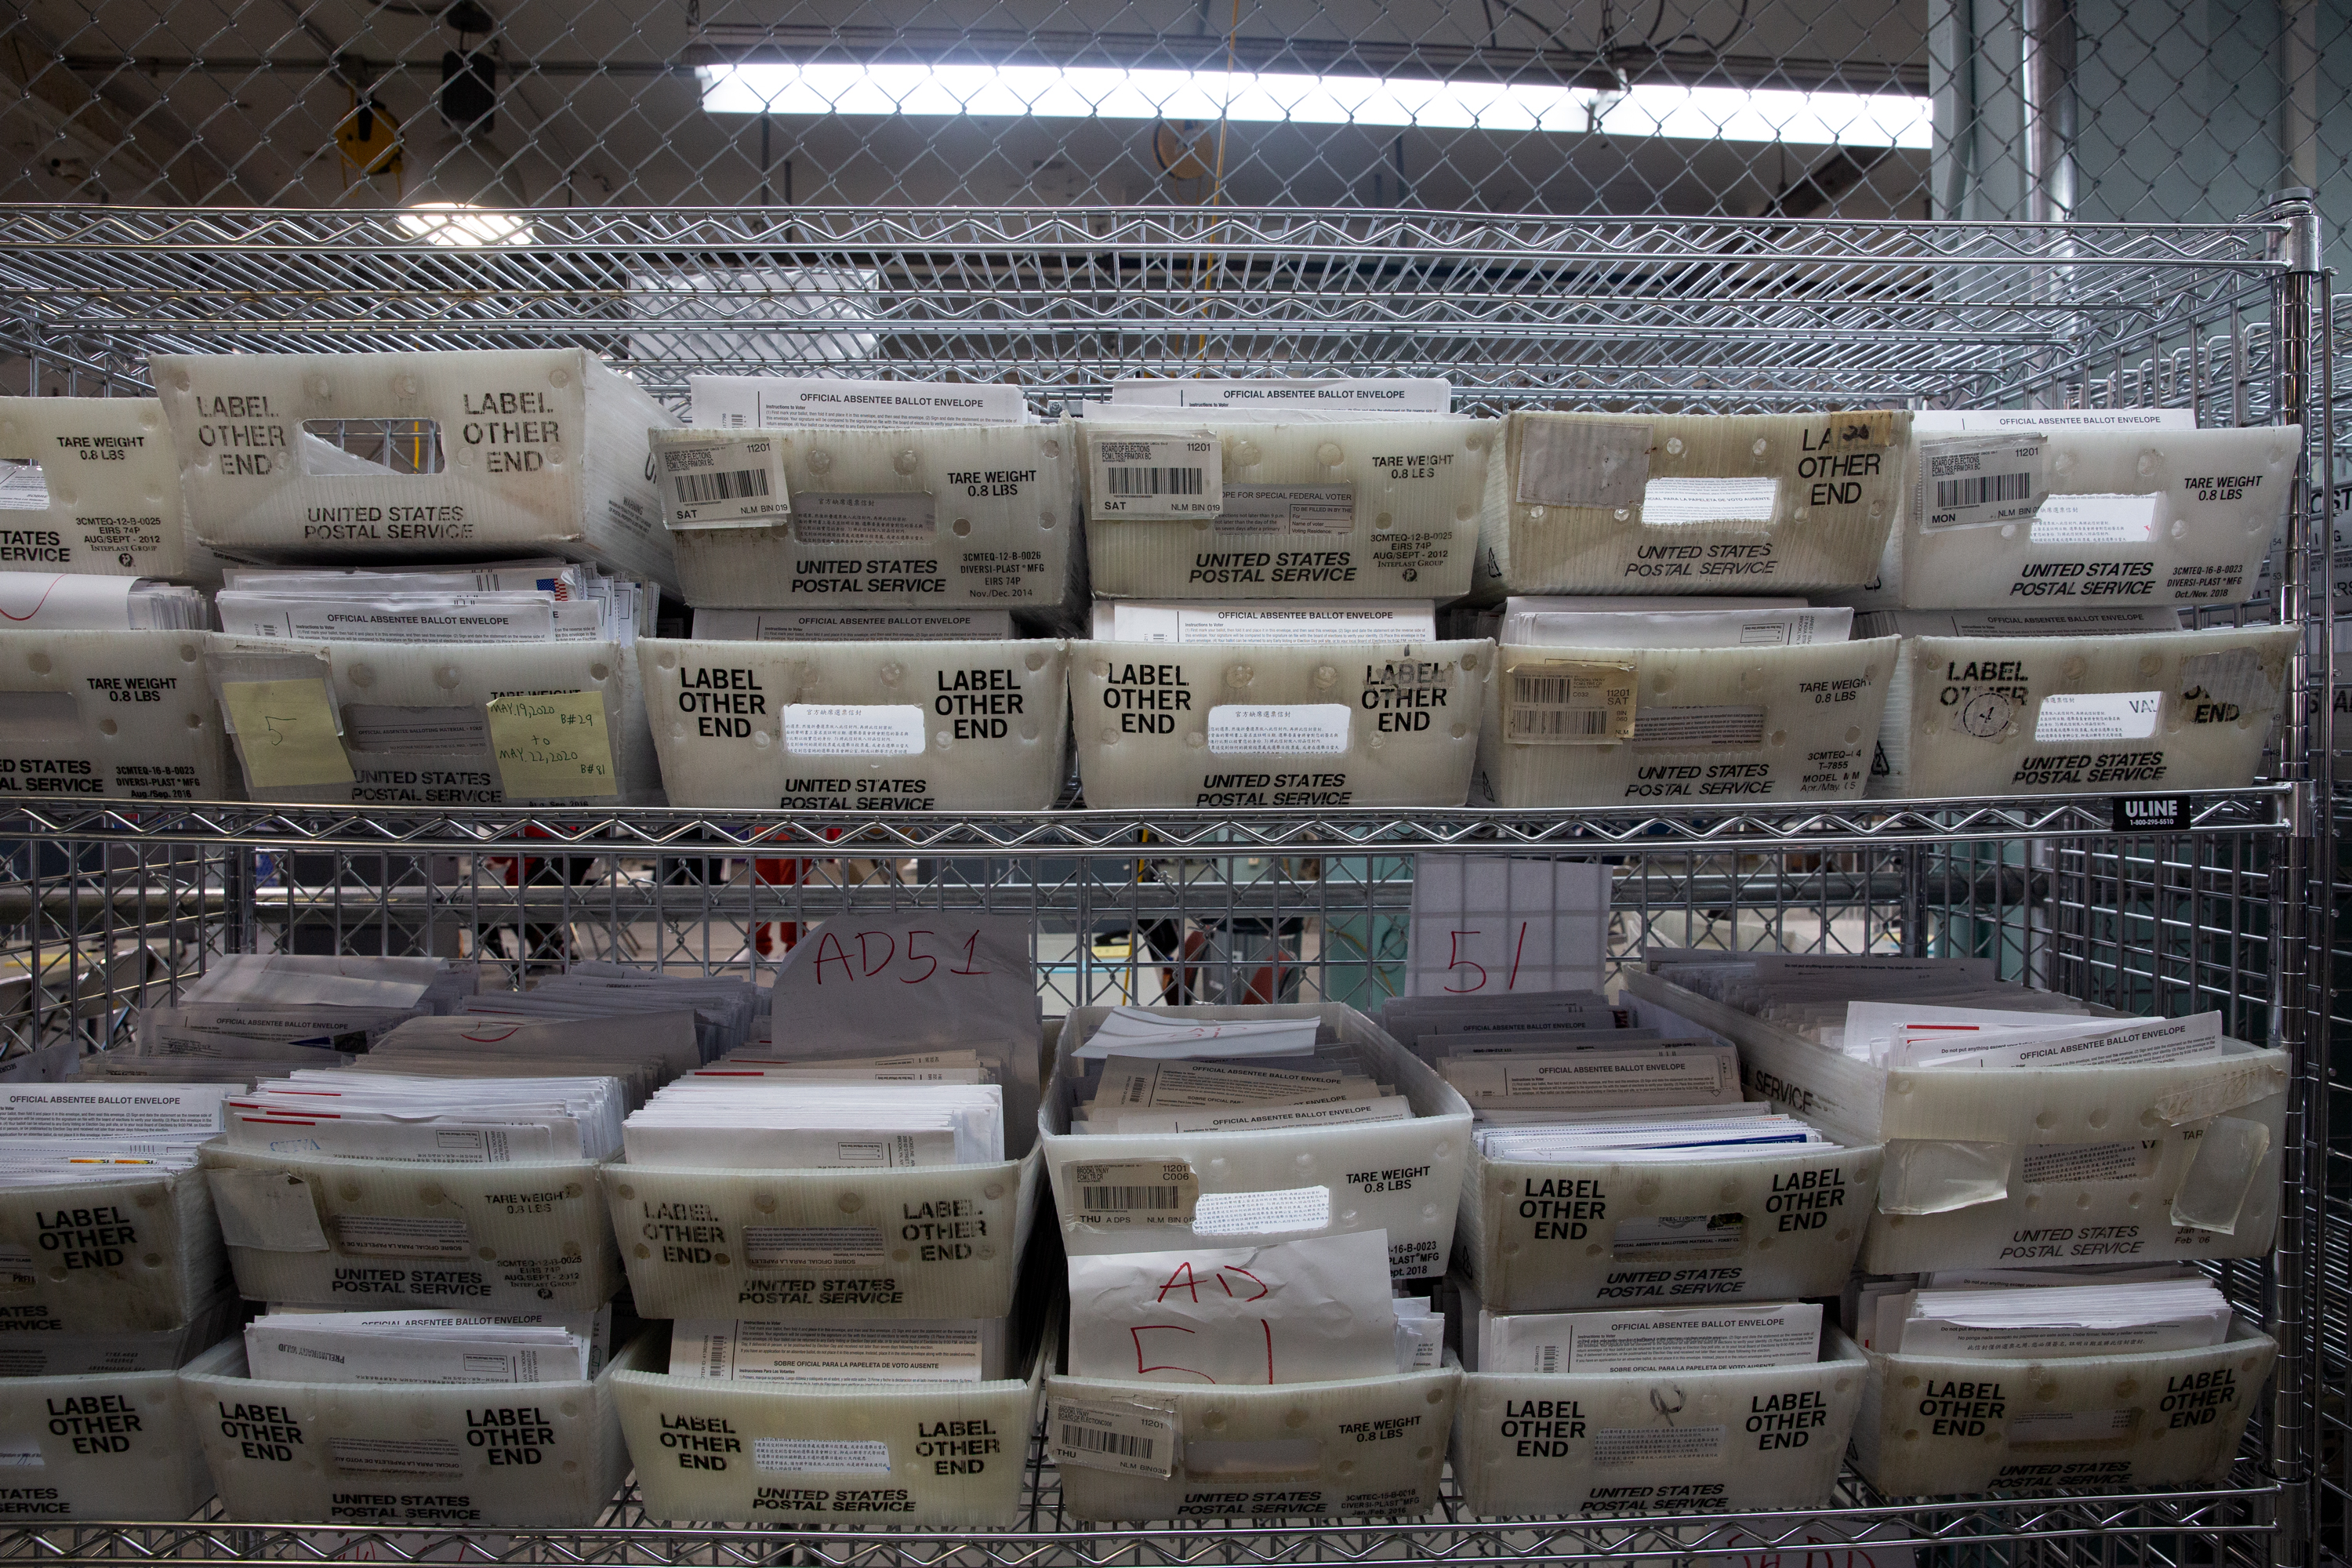 The Board of Elections stored 2020 general election absentee ballots in the a Brooklyn warehouse before being counted. Nov. 10, 2020.